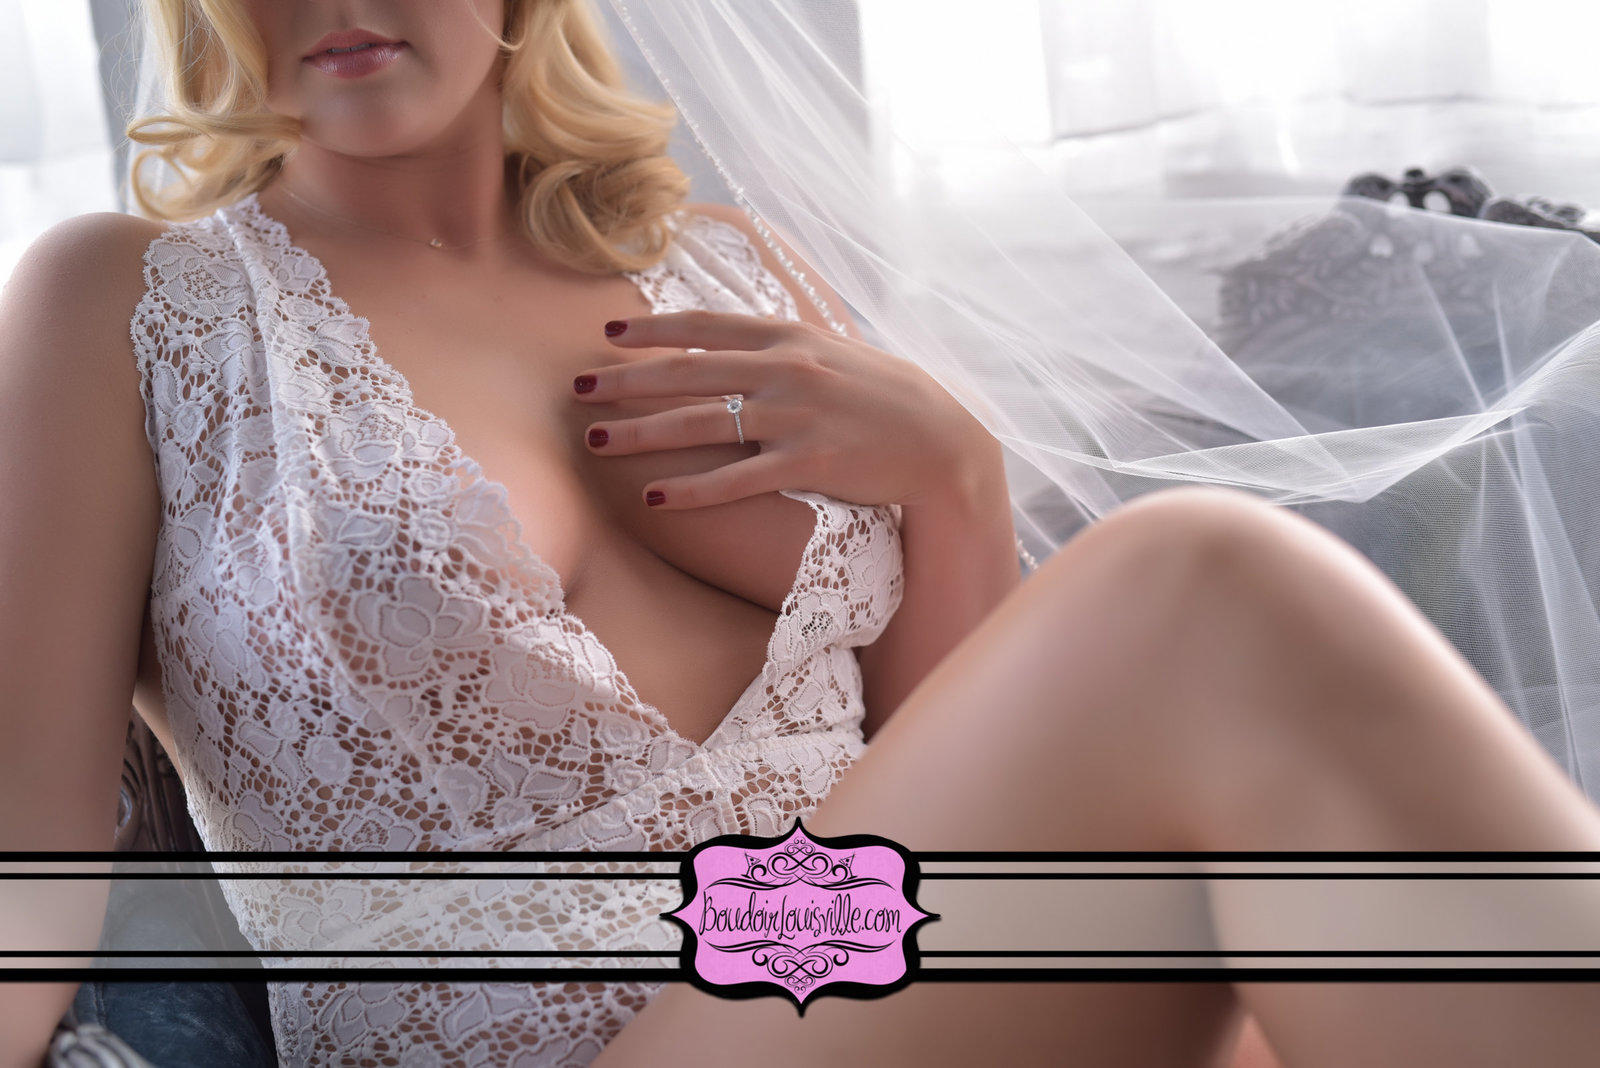 Boudoir Louisville - Bridal Boudoir Photo Studio-7